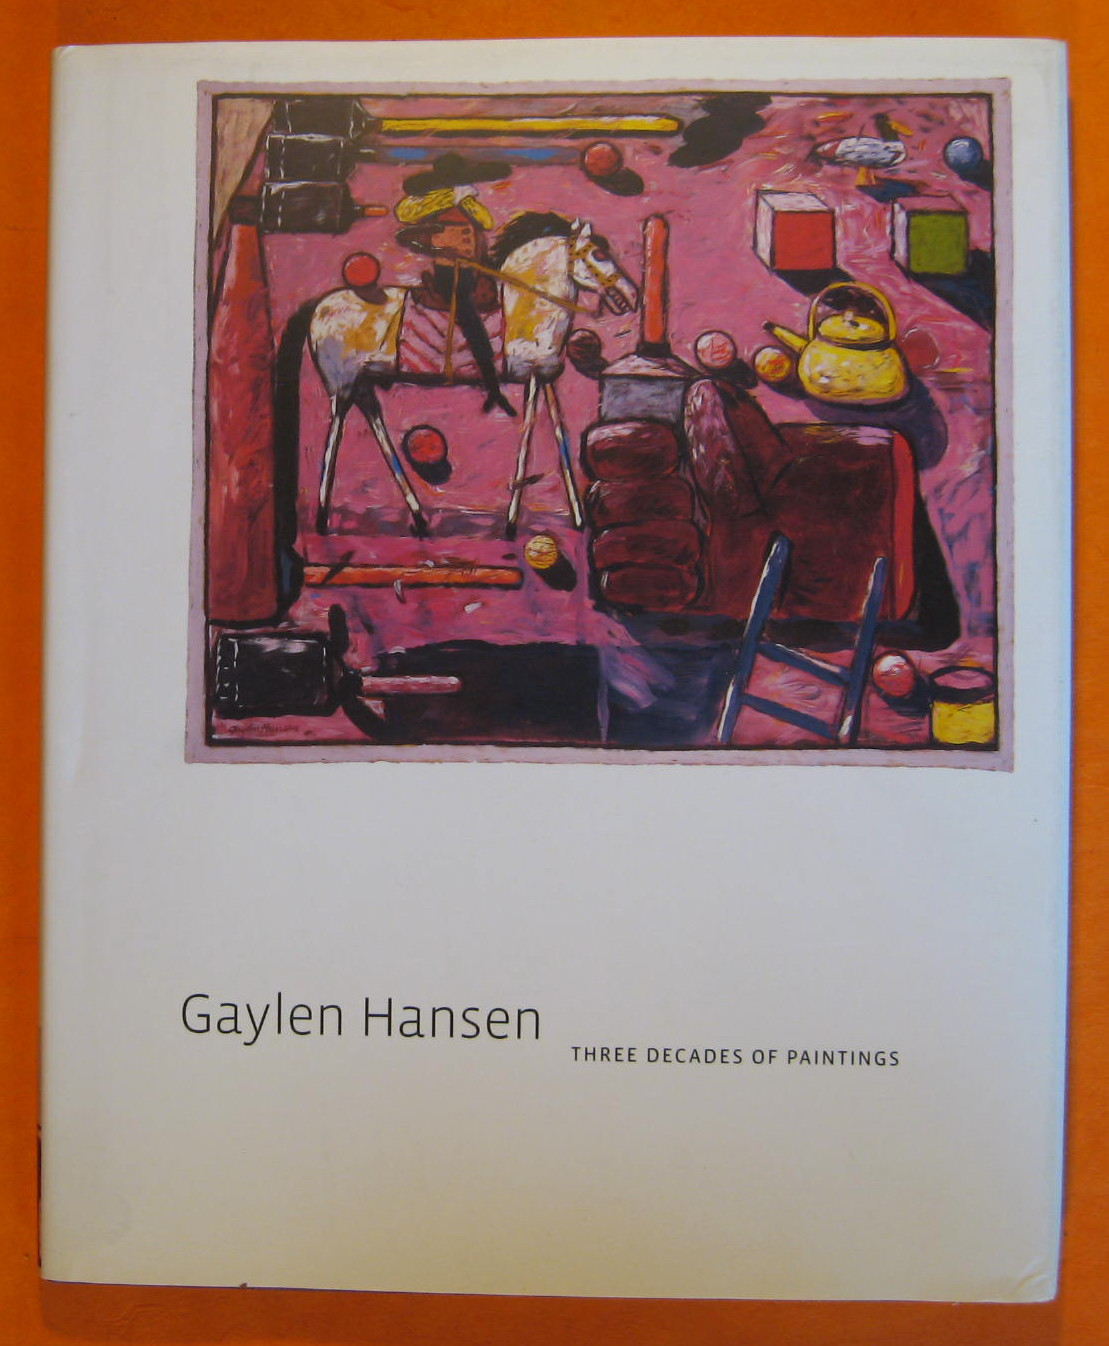 Gaylen Hansen Three Decades of Paintings, Wells, Keith, Larsen, Gary, Bruce, Chris